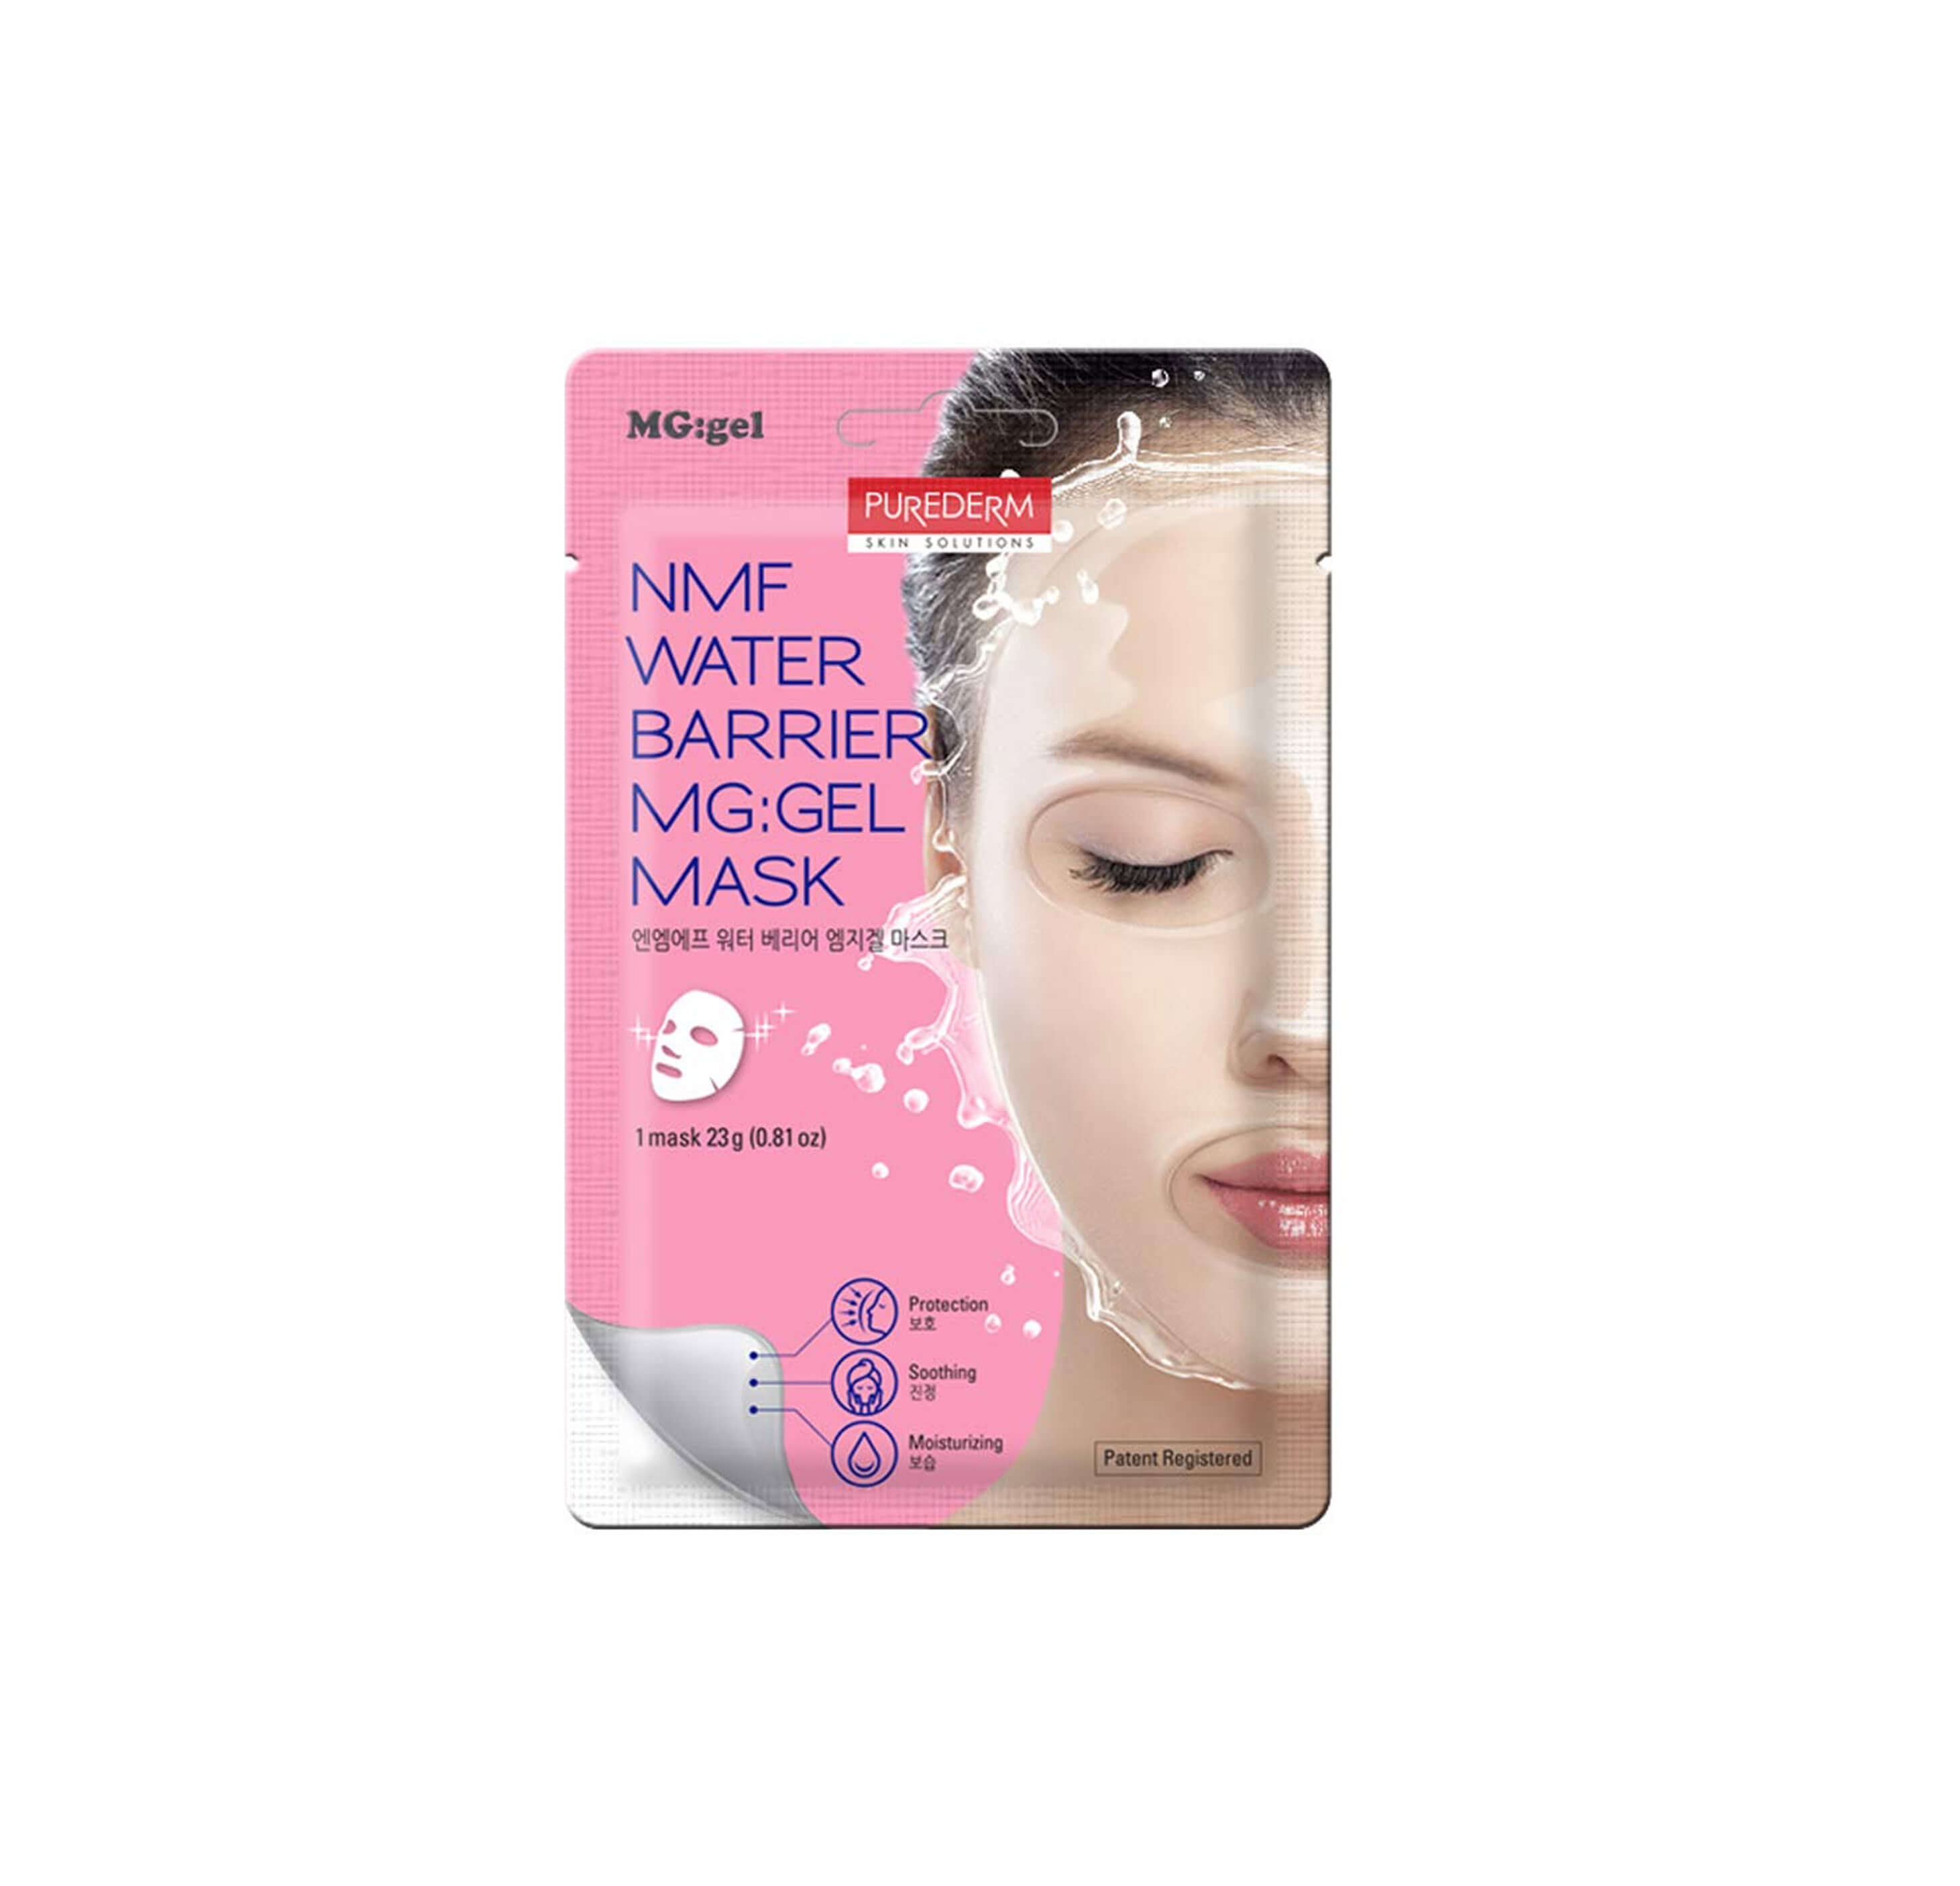 Purederm NMF Water Barrier Gel Mask